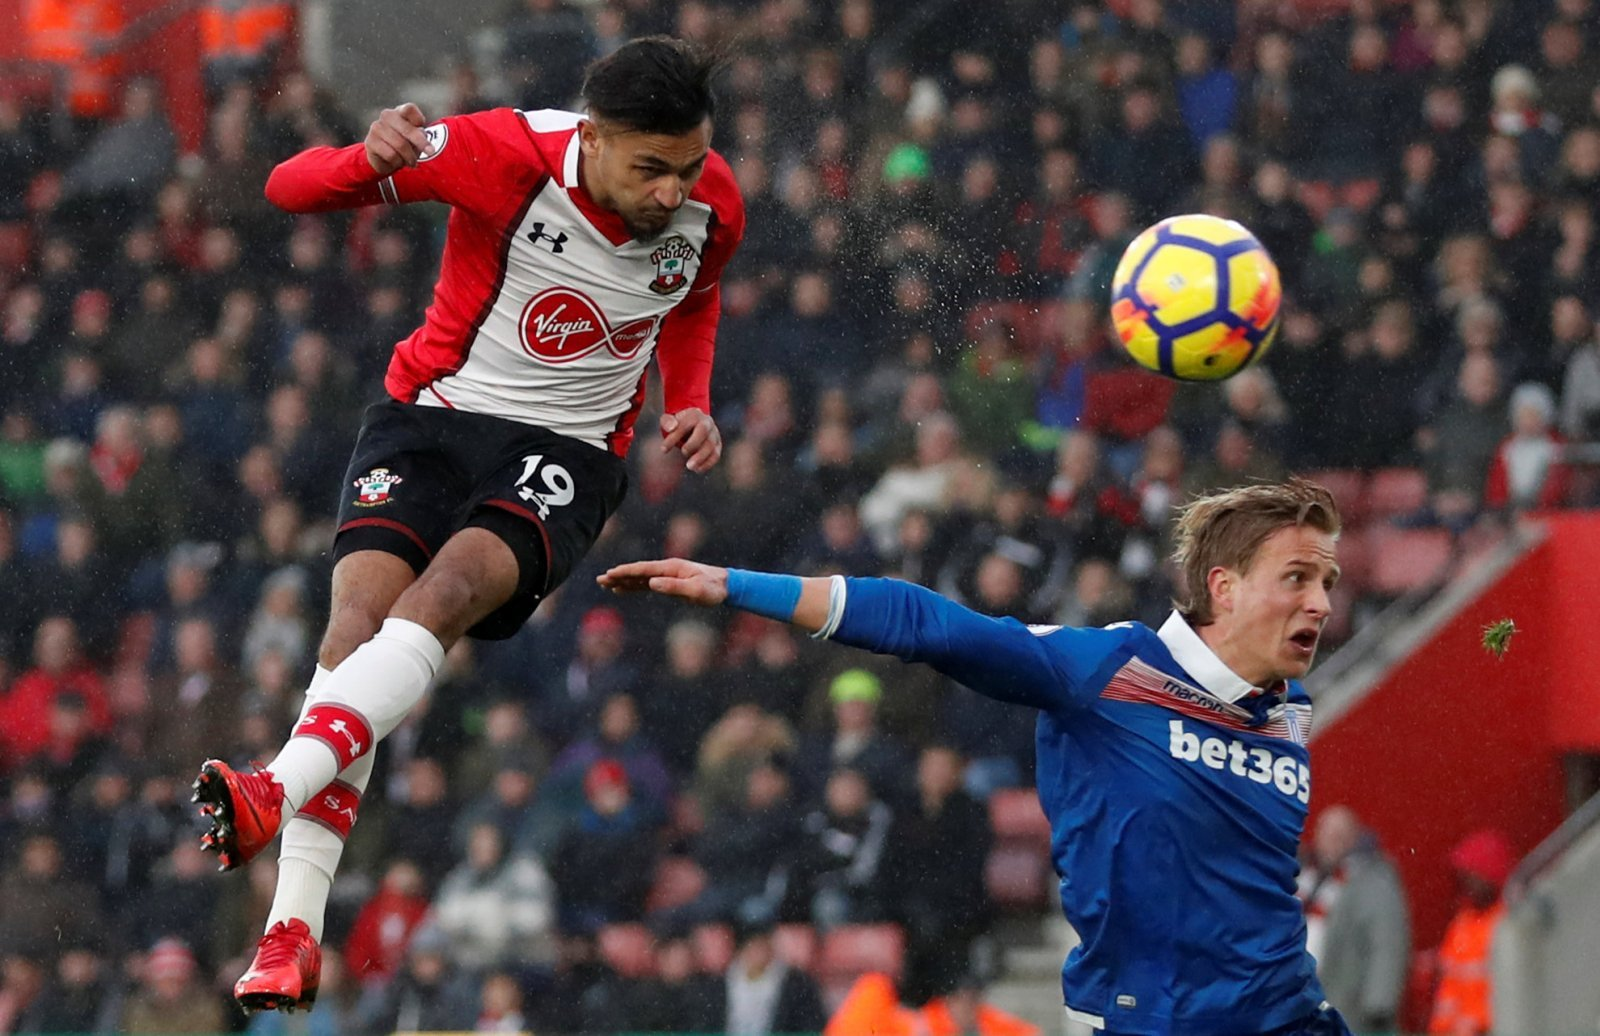 Potential Consequences: Sofiane Boufal leaves Southampton permanently